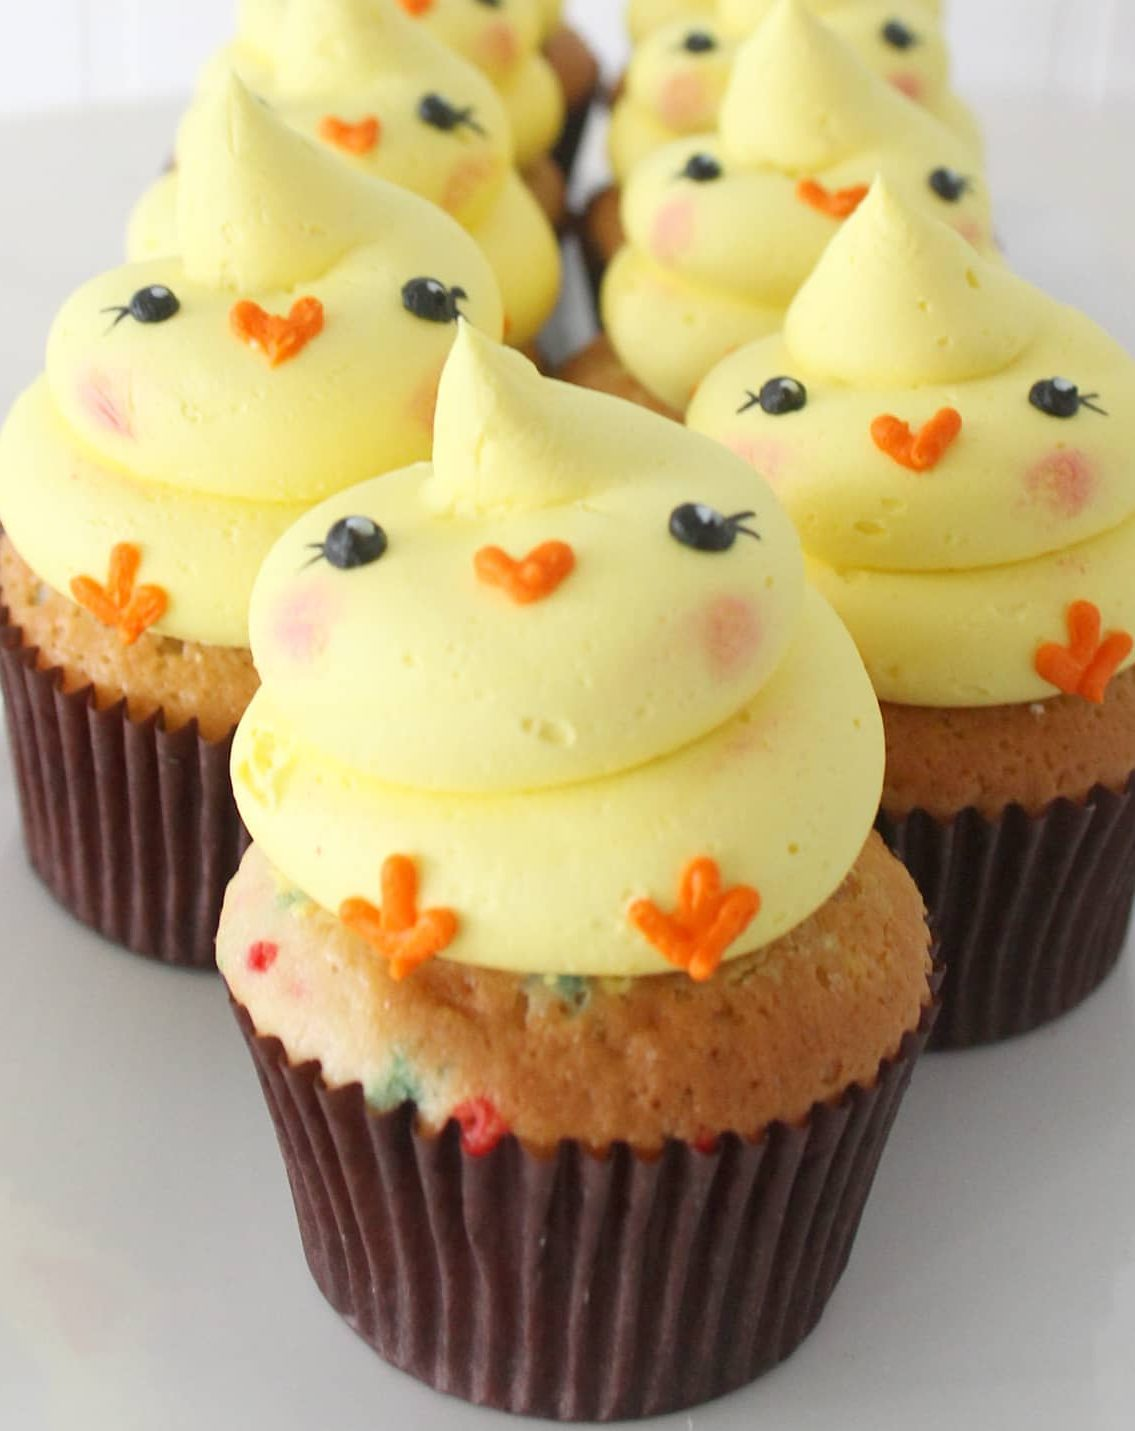 Easter Chick Cupcakes With Frosting